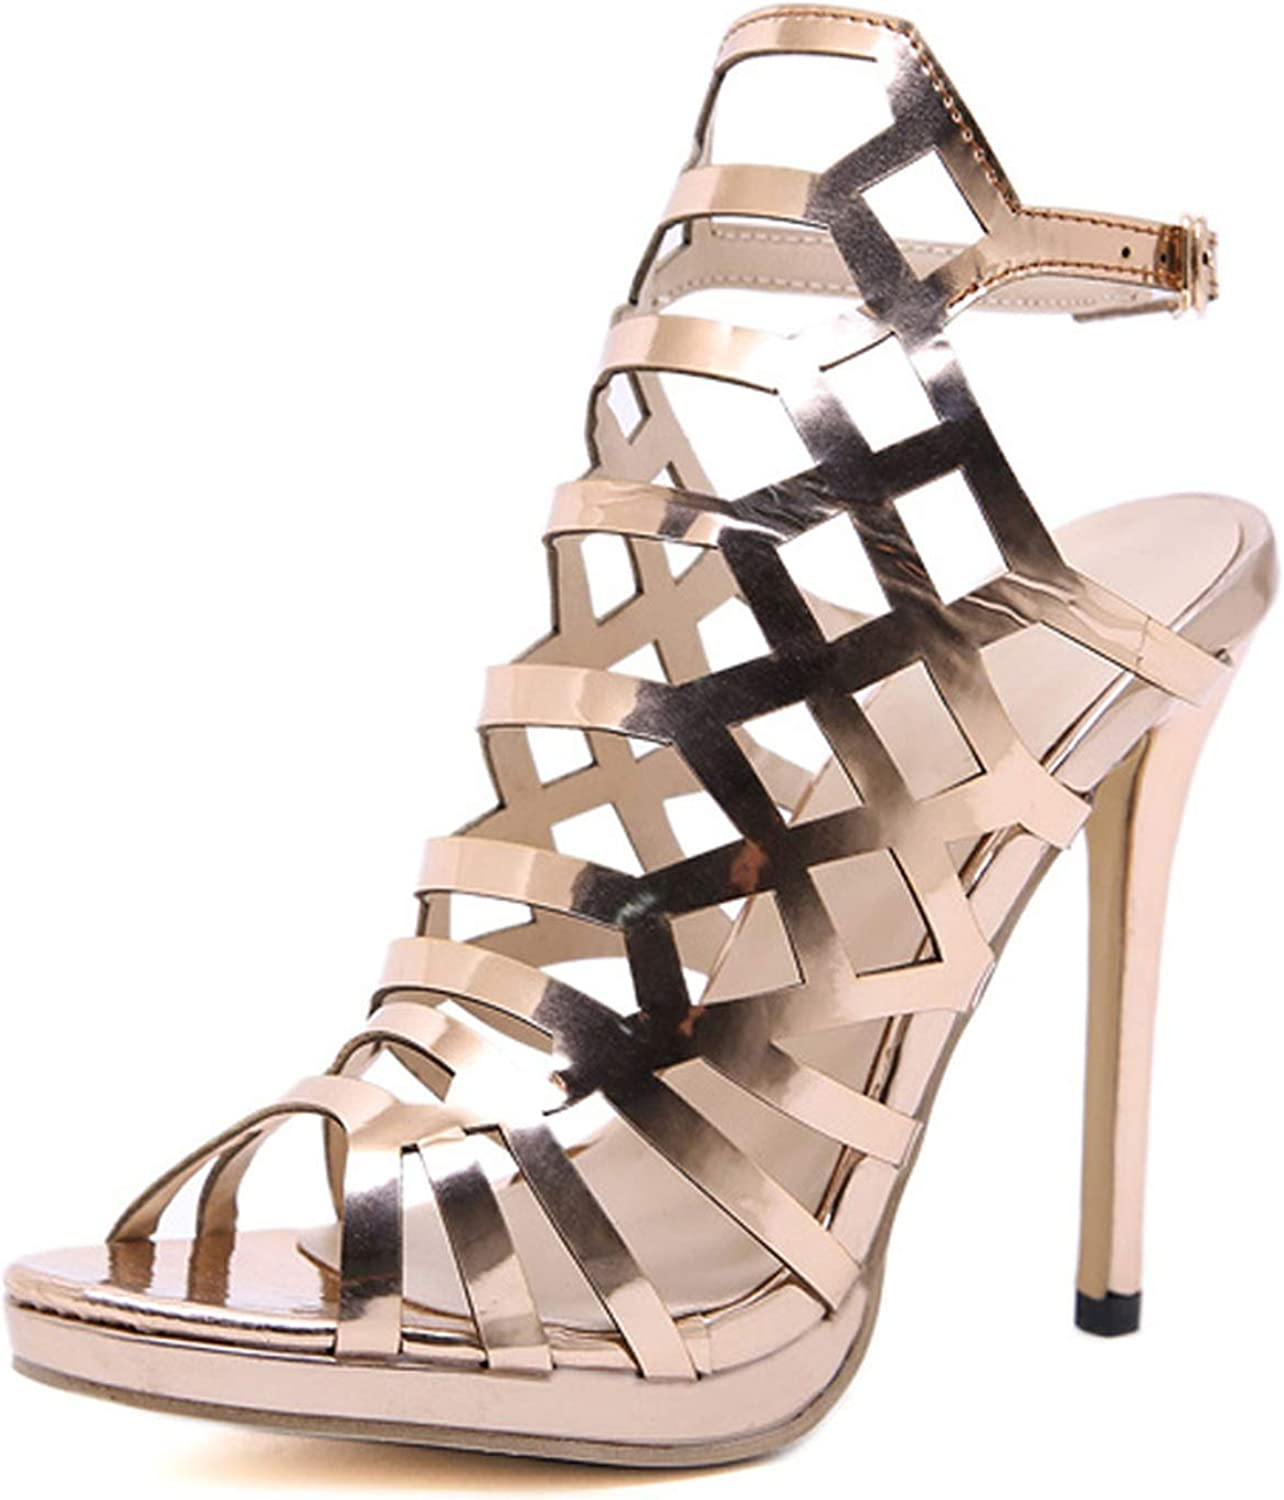 Ches 2019 Open ToeThin Heels Gladiator for Women Sandals Champagne Fashion Buckle Back Strap Ladies shoes